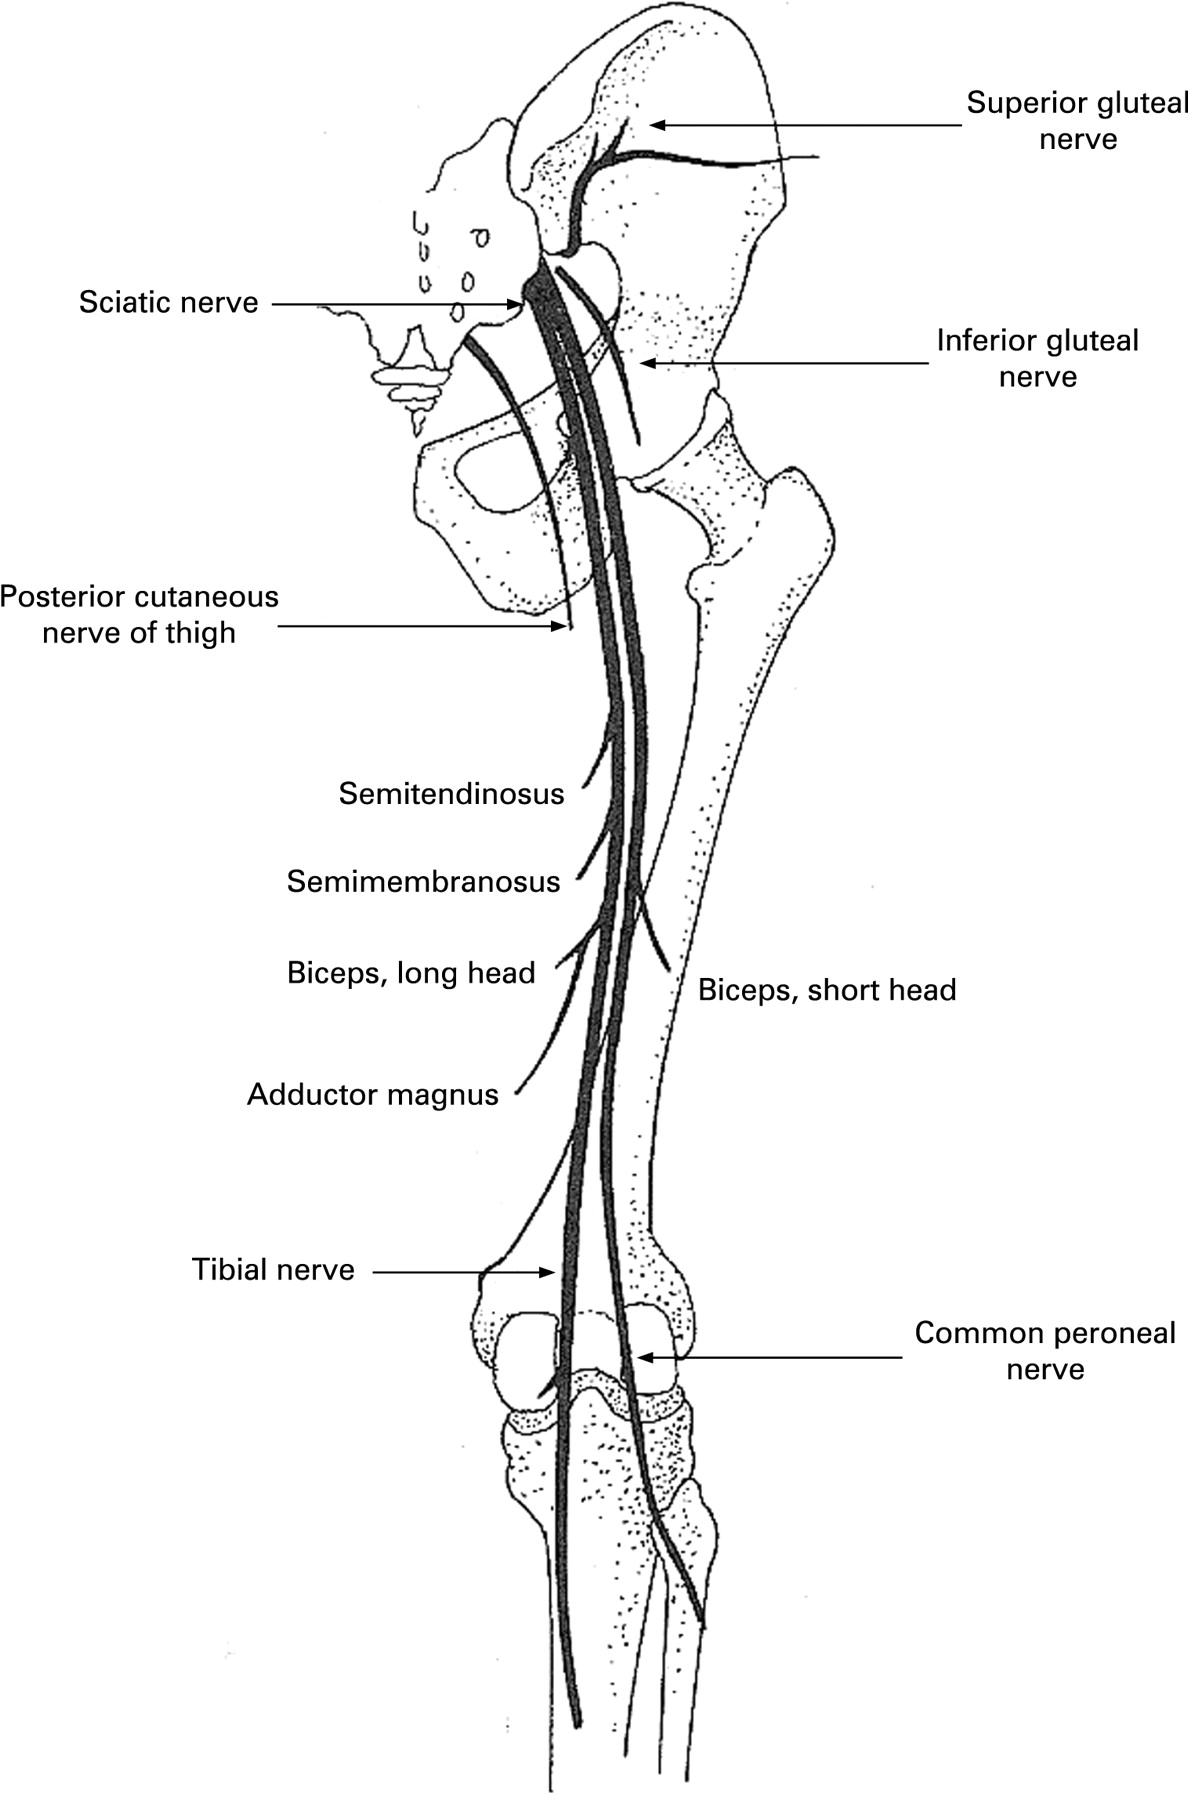 Foot drop: where, why and what to do? -- Stewart 8 (3 ... Sciatic Nerve Branches